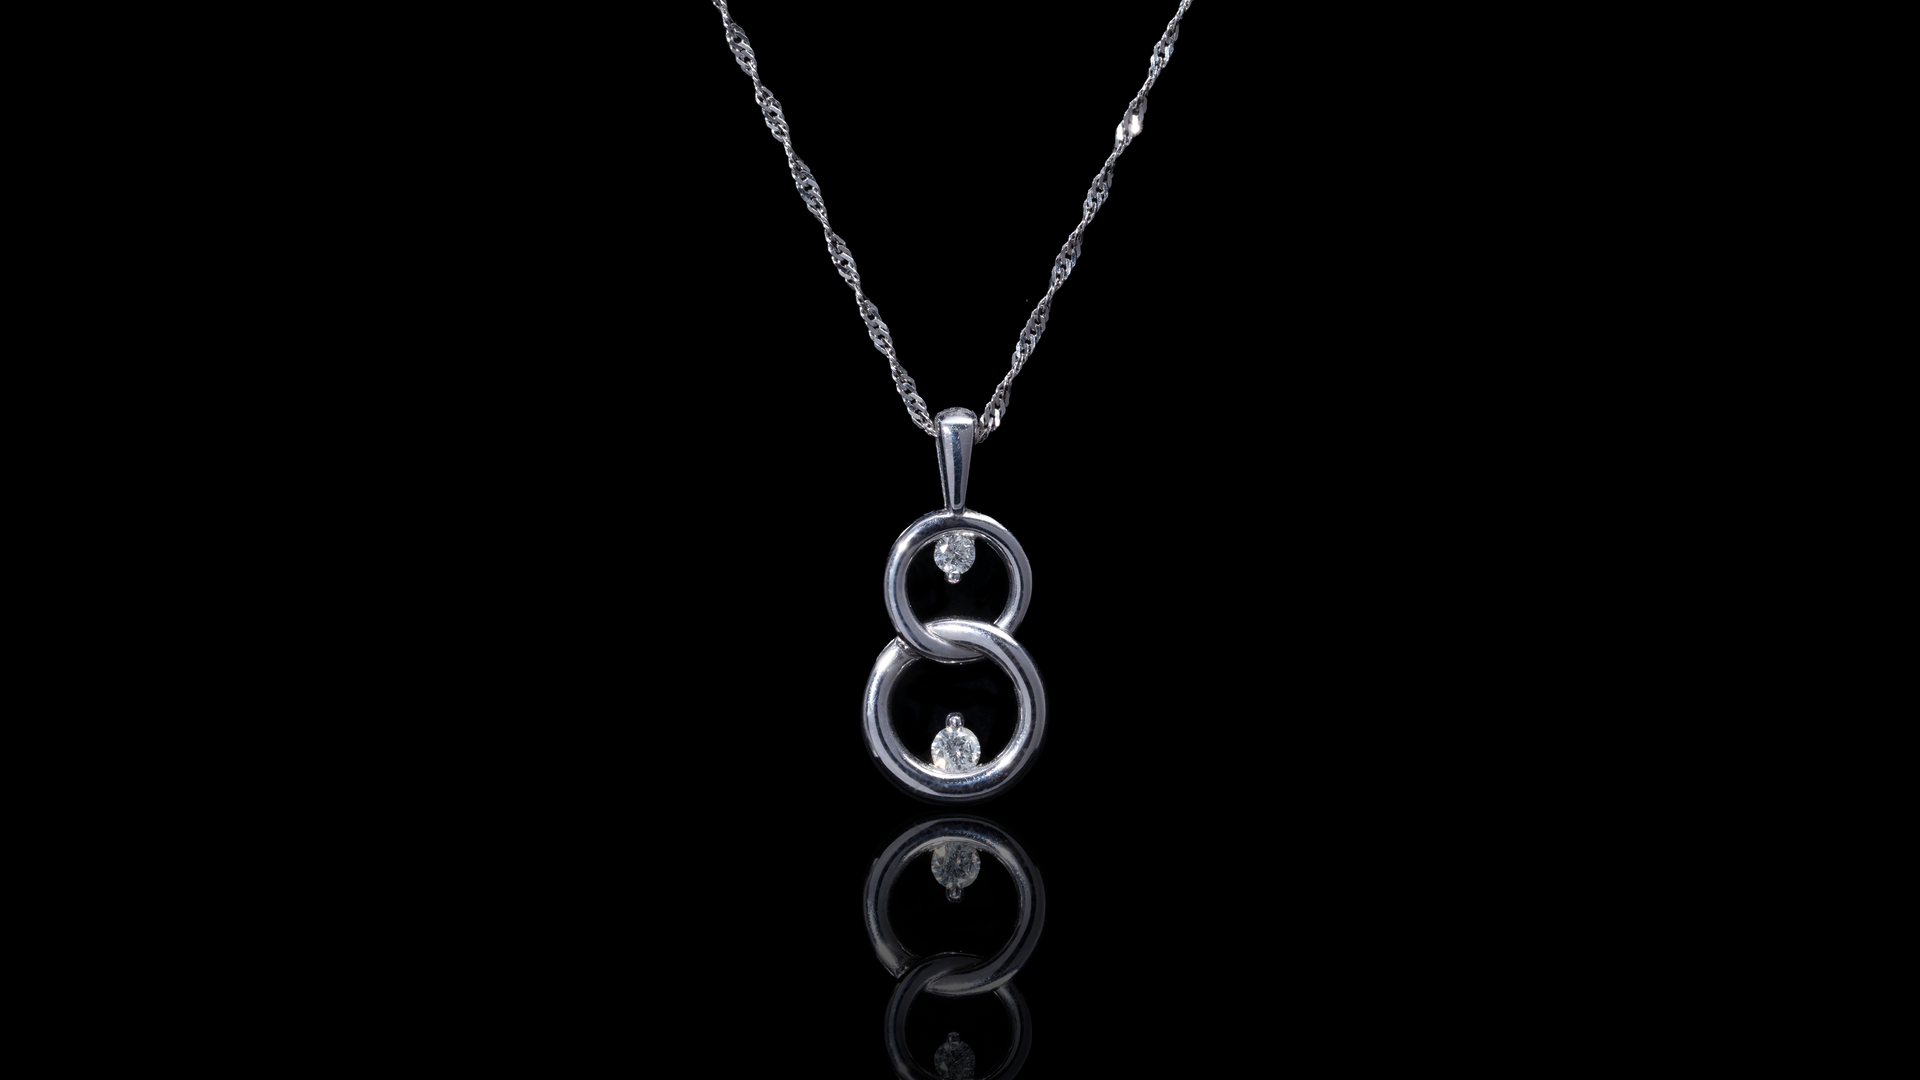 [SPECIAL] 10k White Gold Figure 8 Diamond Necklace